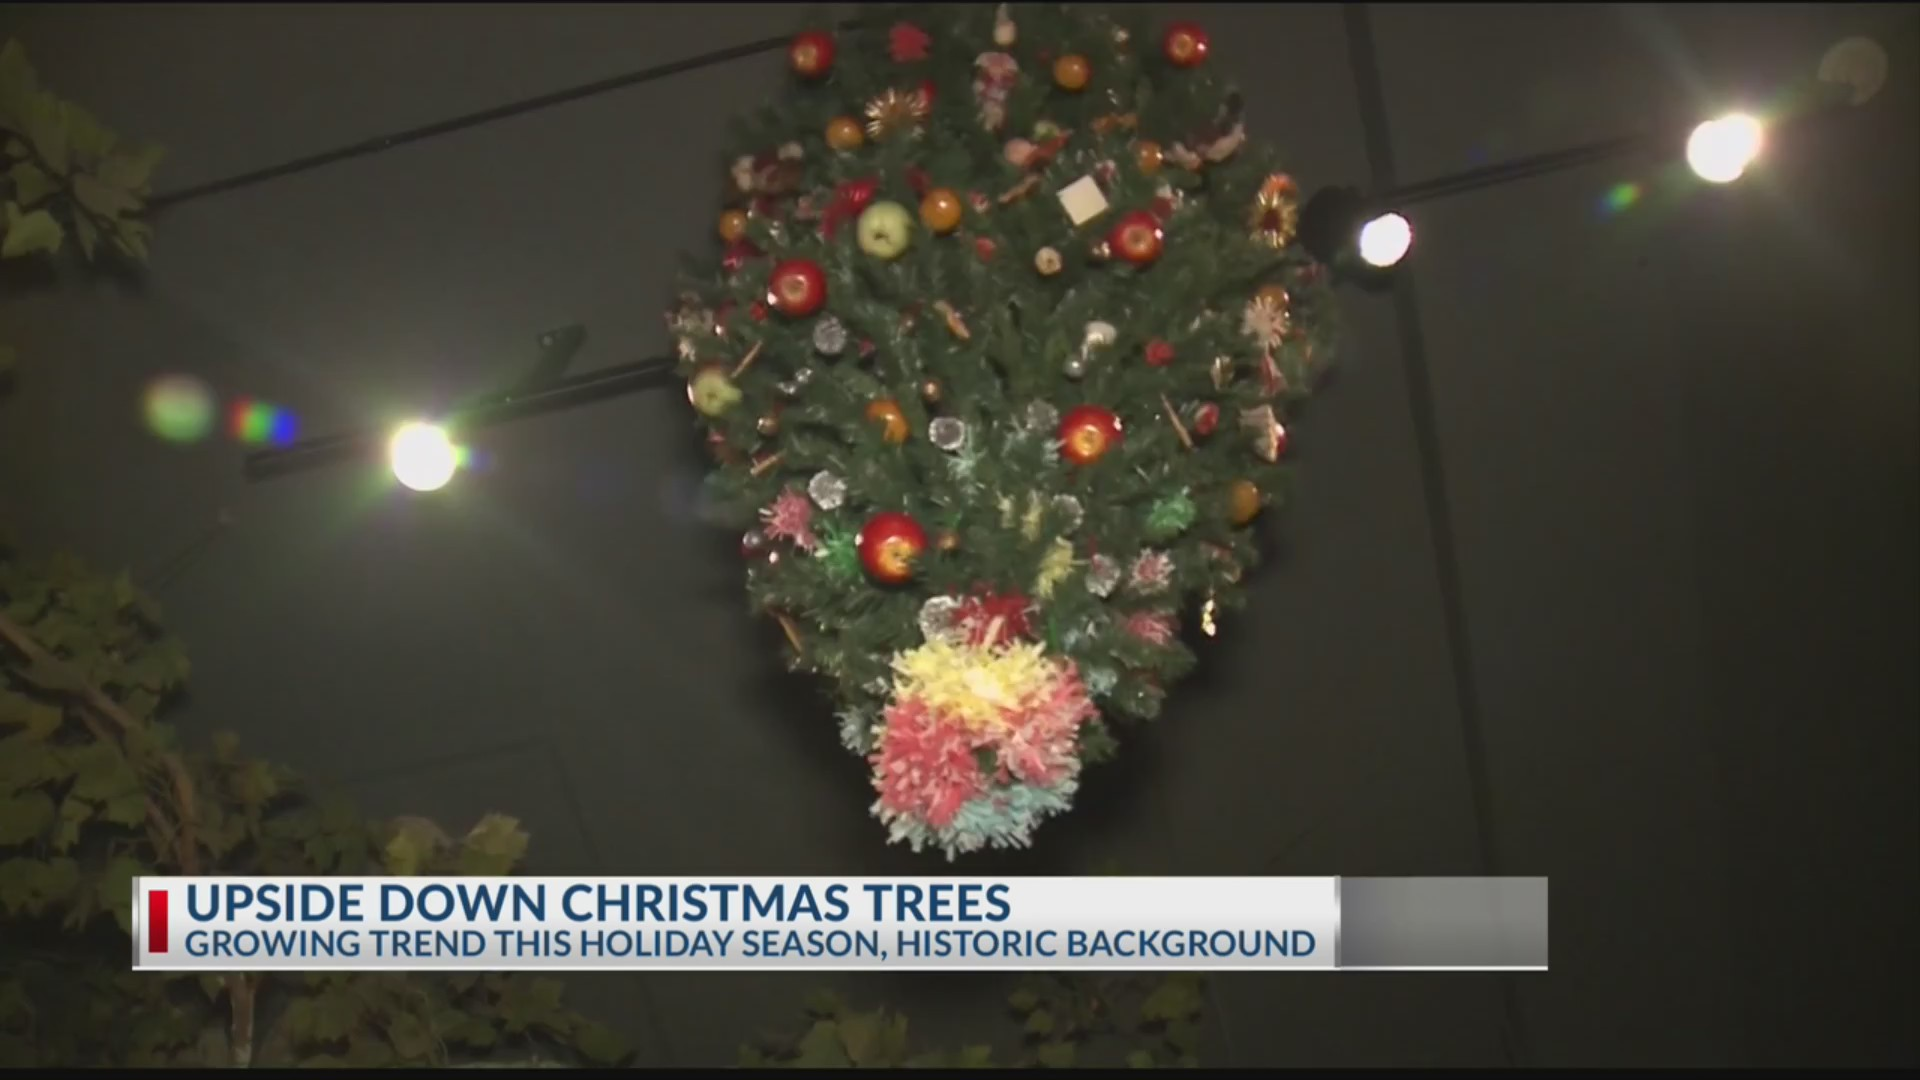 Upside down Christmas trees a trend this holiday season